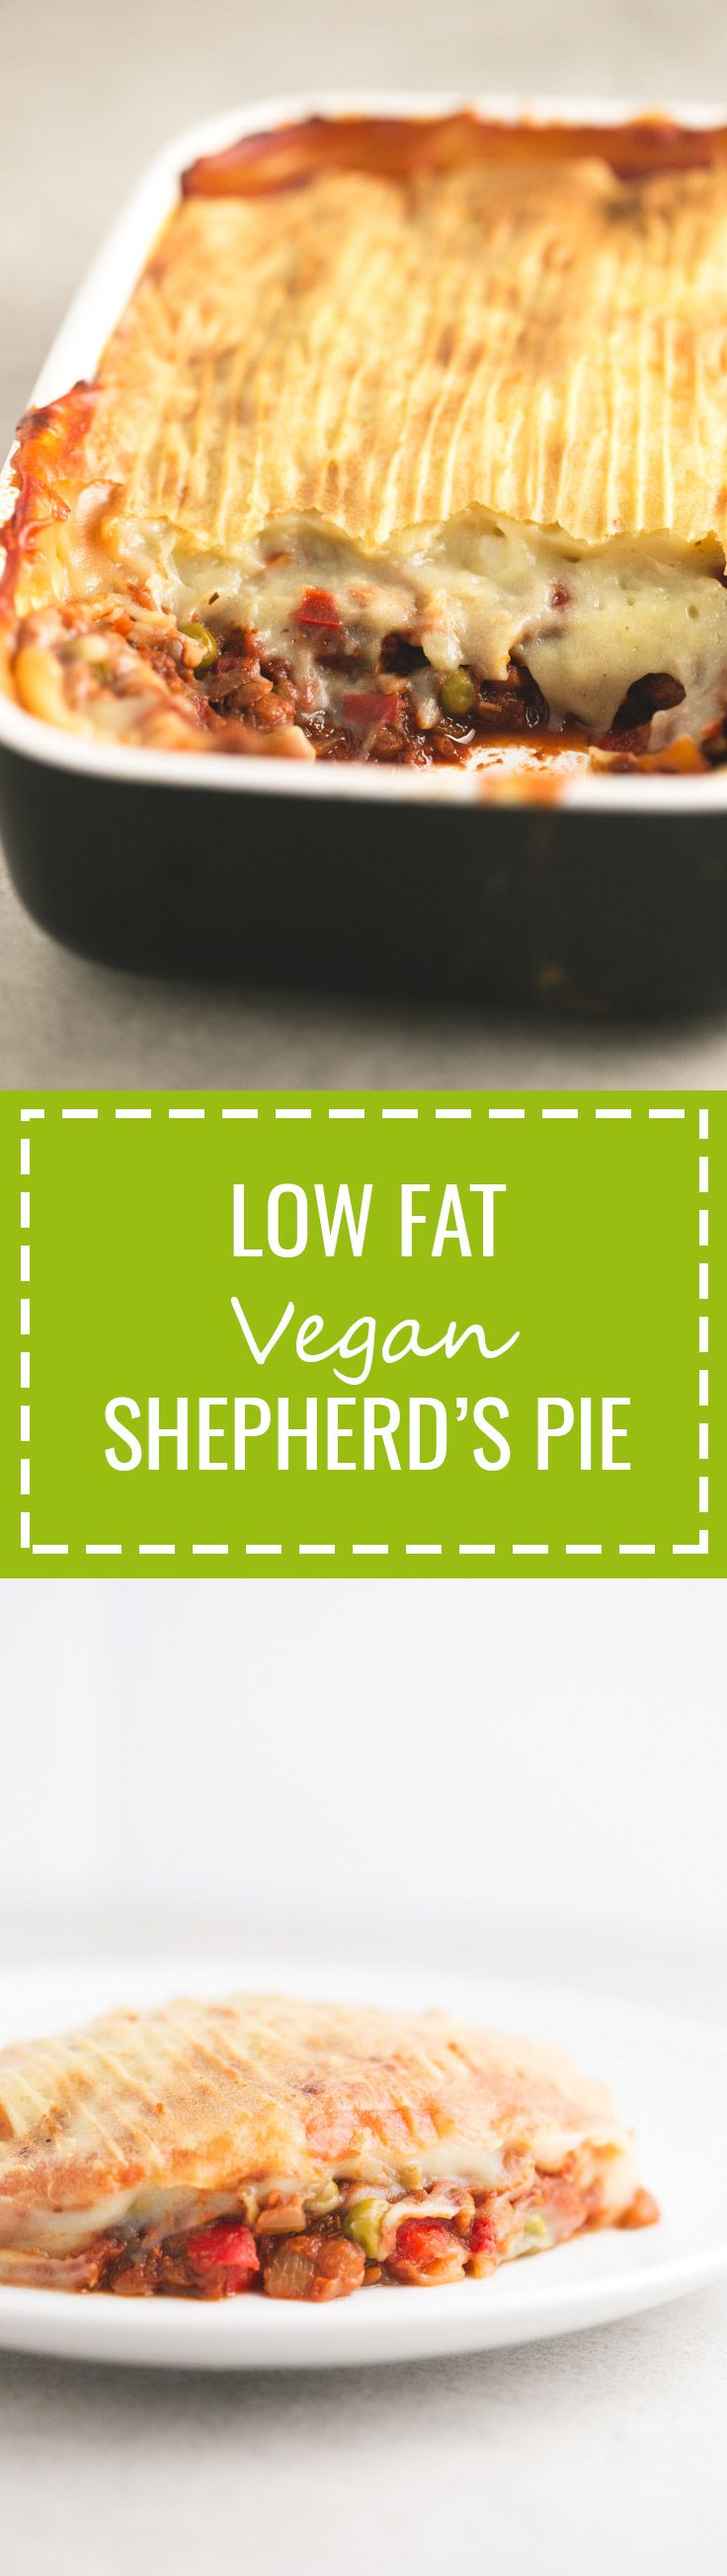 Low Fat Vegan Shepherds Pie